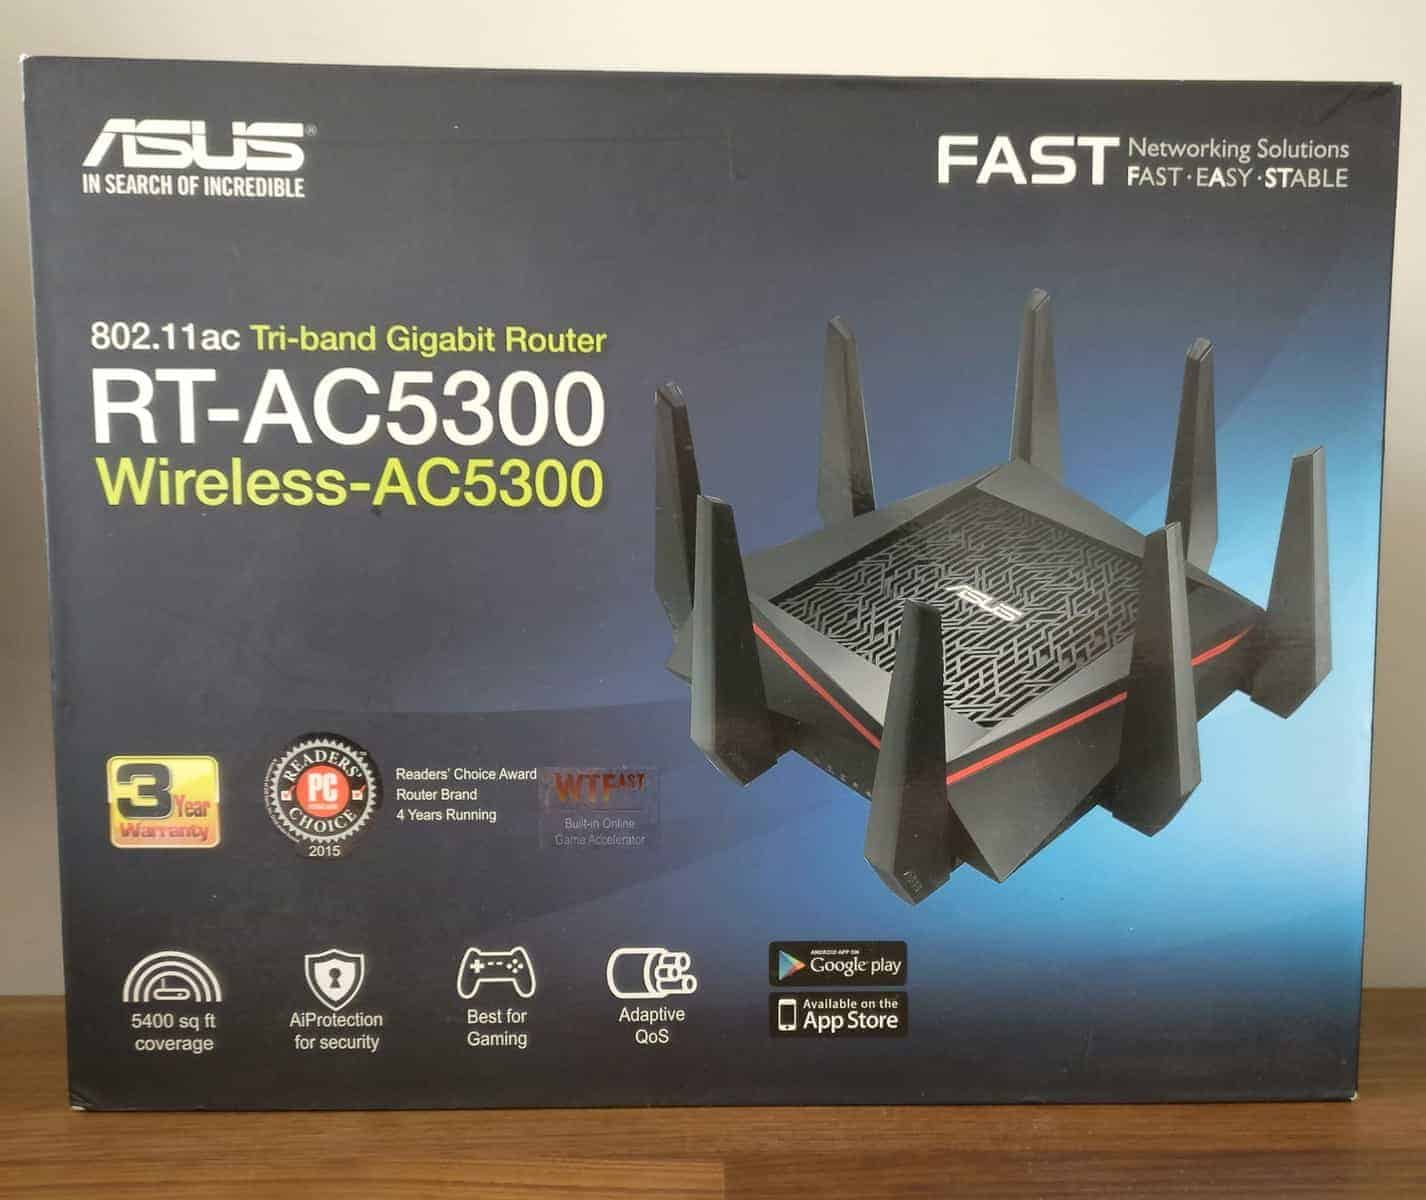 Asus-Router-Photos01 Asus RT-AC5300 Router Review